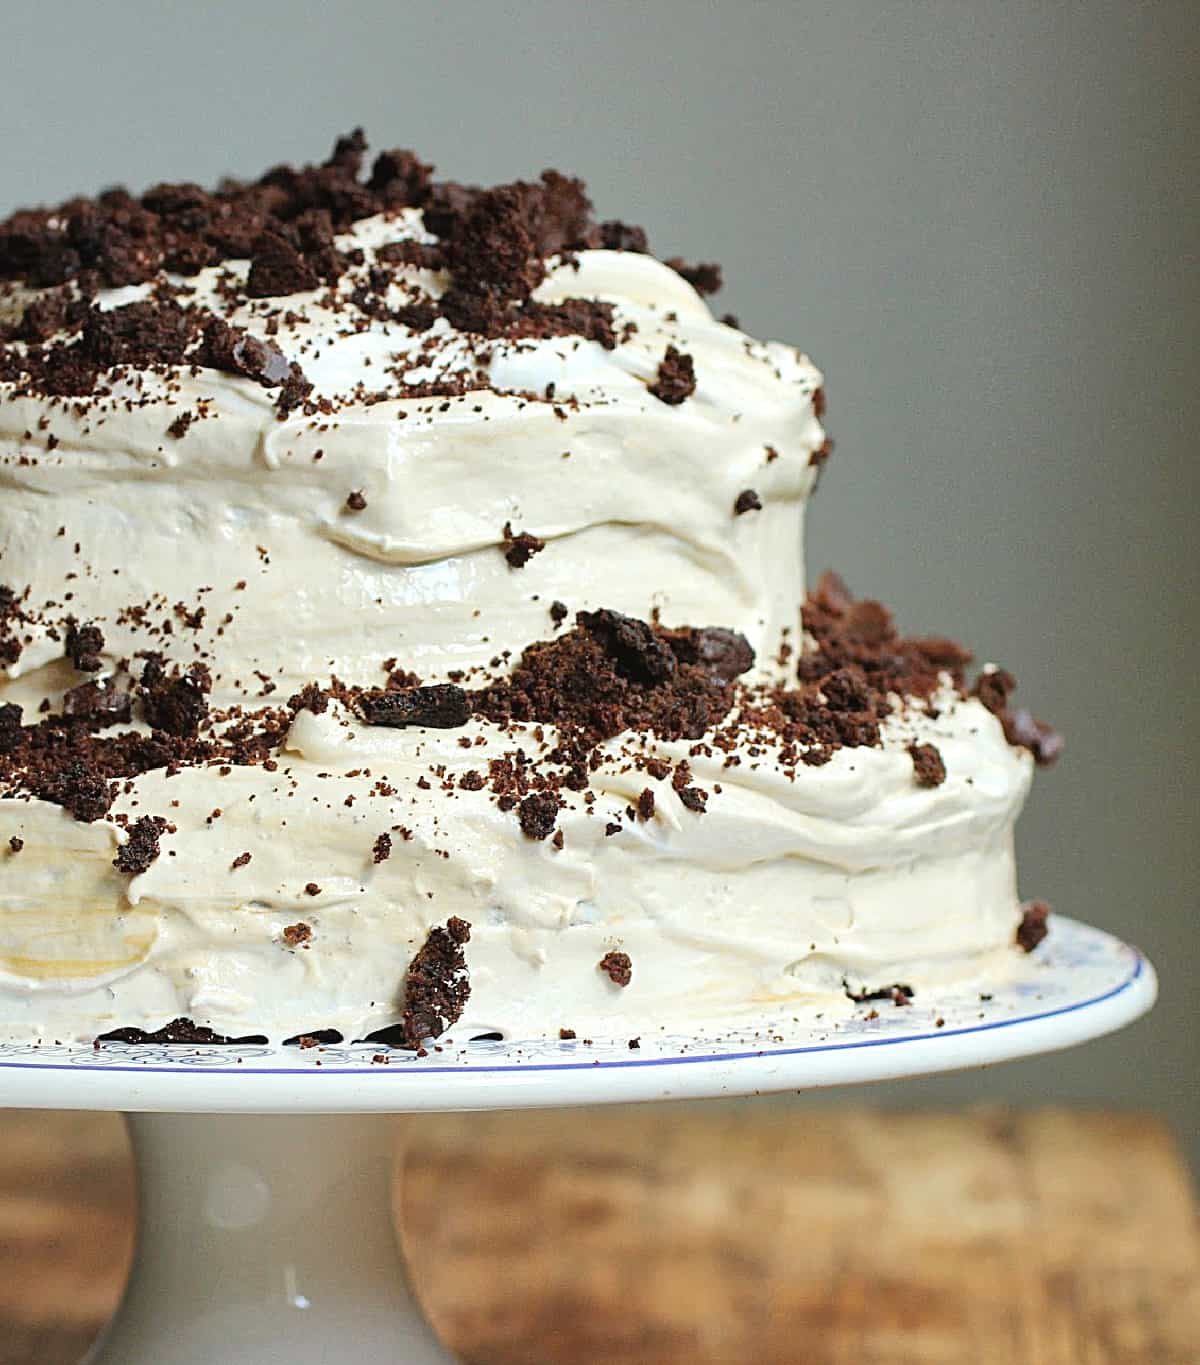 Partial view of whole cake on cake stand frosted with meringue and chocolate crumbs